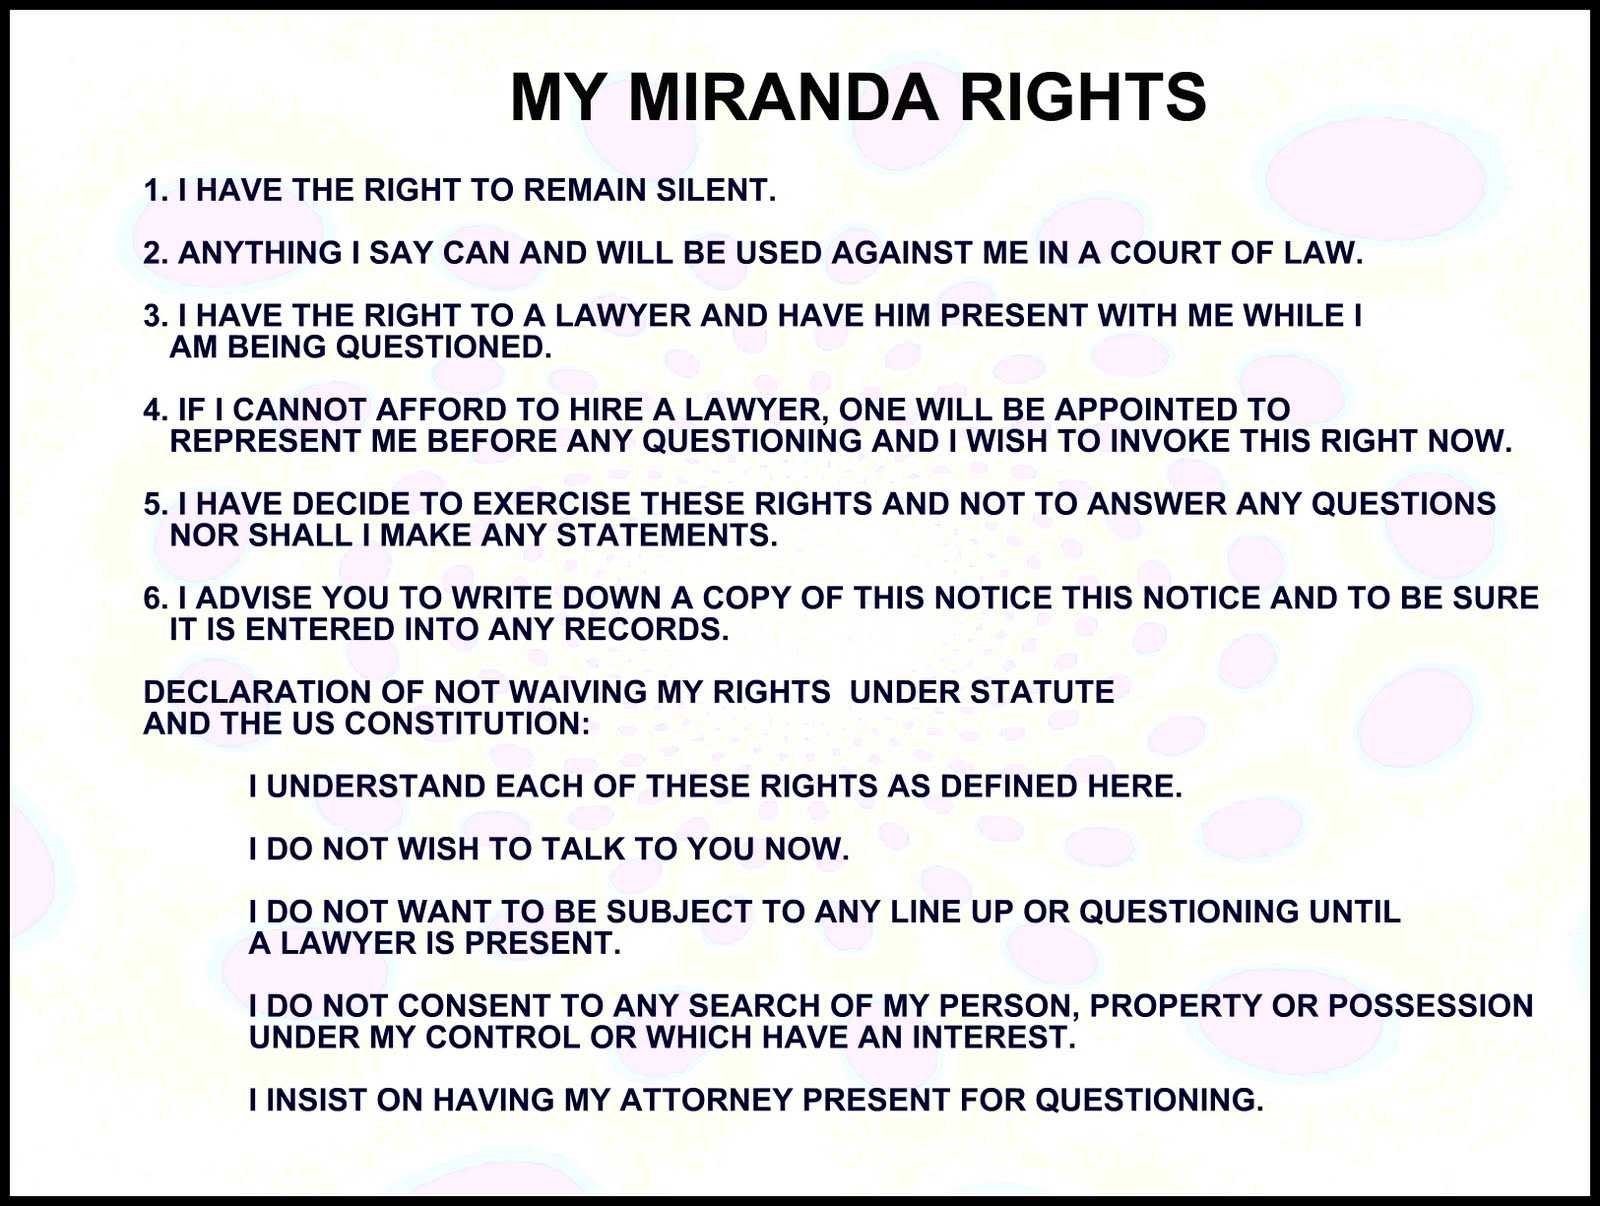 Thumbnail image for Thumbnail image for My_Miranda_Rights.jpg